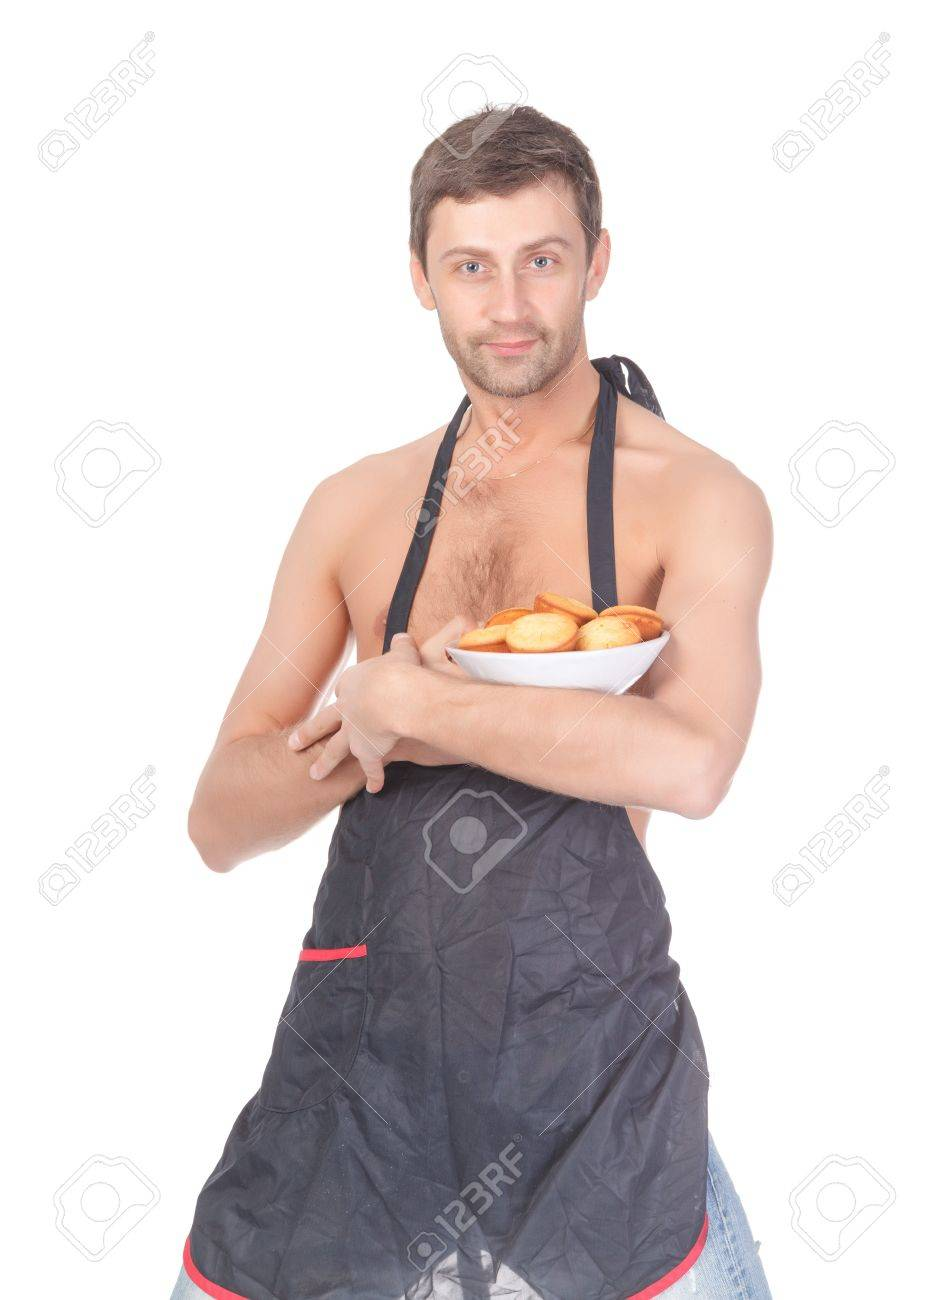 Attractive man trying his hand at baking wearing an apron and carrying a bowl of freshly baked cookies isolated on white Stock Photo - 15869950